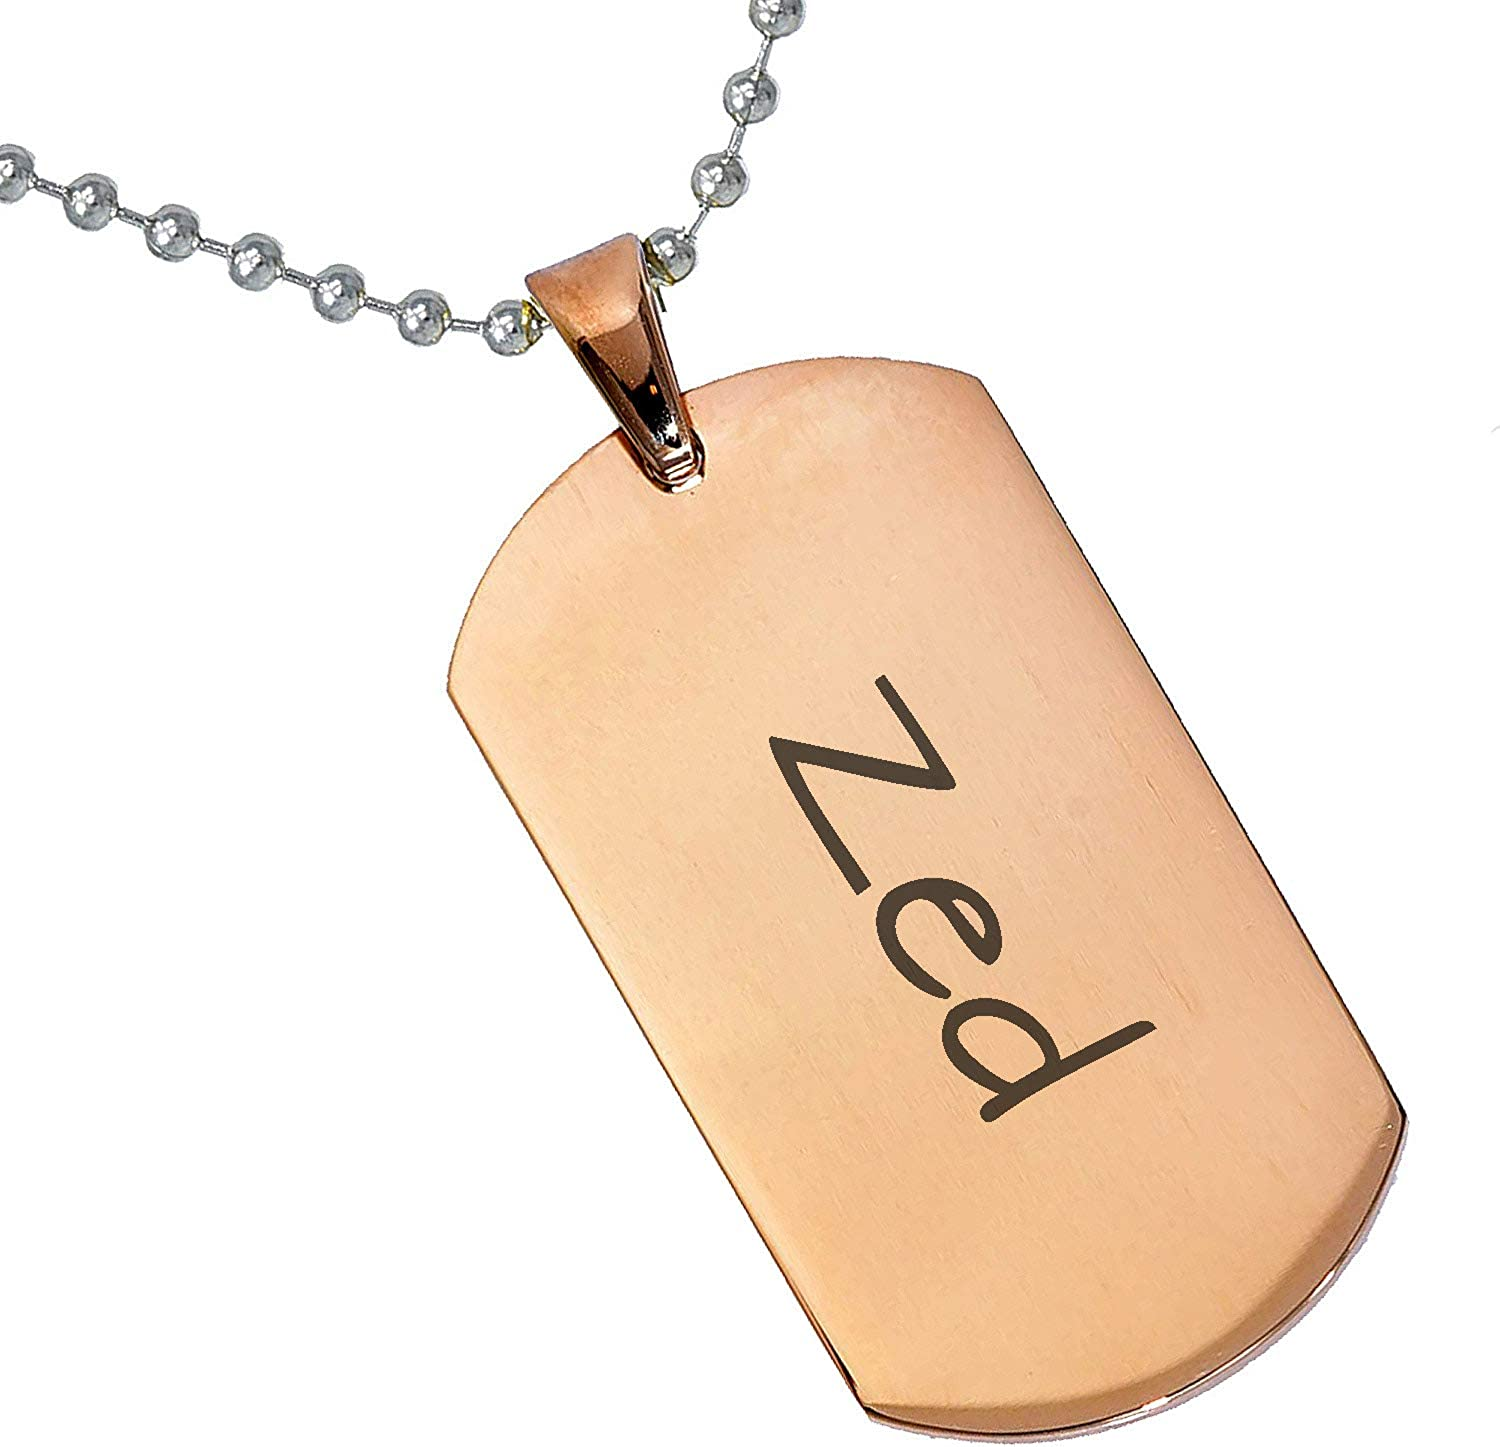 Stainless Steel Silver Gold Black Rose Gold Color Baby Name Zed Engraved Personalized Gifts For Son Daughter Boyfriend Girlfriend Initial Customizable Pendant Necklace Dog Tags 24 Ball Chain